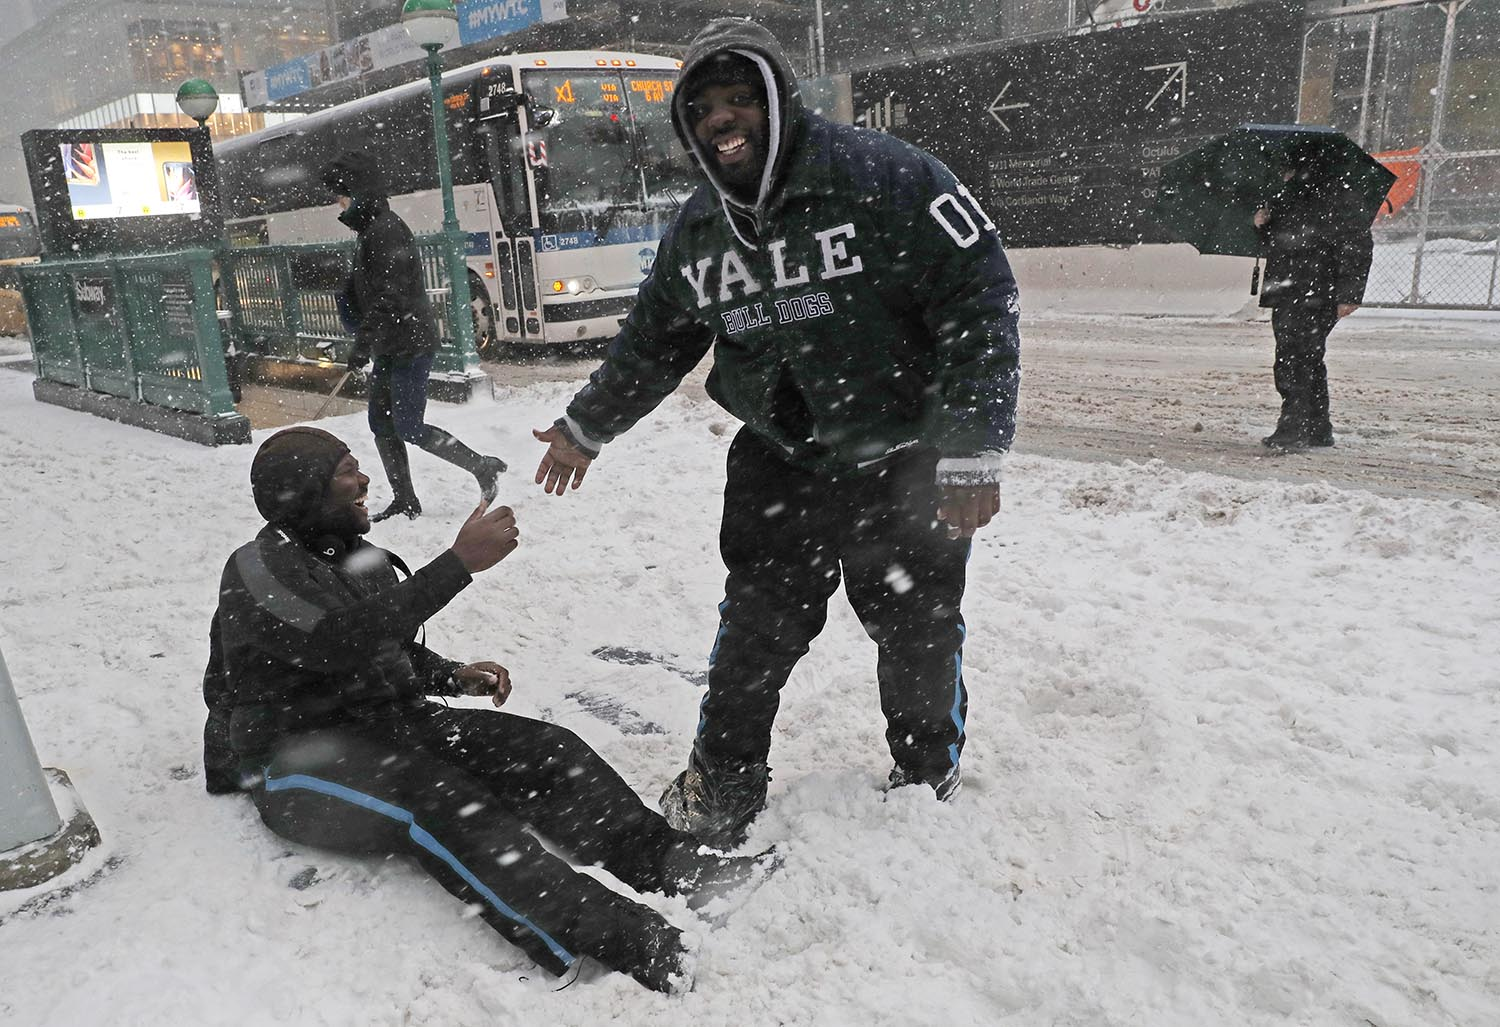 "<div class=""meta image-caption""><div class=""origin-logo origin-image ap""><span>AP</span></div><span class=""caption-text"">Marcus Greenaway, right, laughs as he helps his friend Psyquan Campbell up after Cambell slipped in the snow crossing a street in lower Manhattan in New York, Jan. 4, 2018. (AP Photo/Kathy Willens)</span></div>"